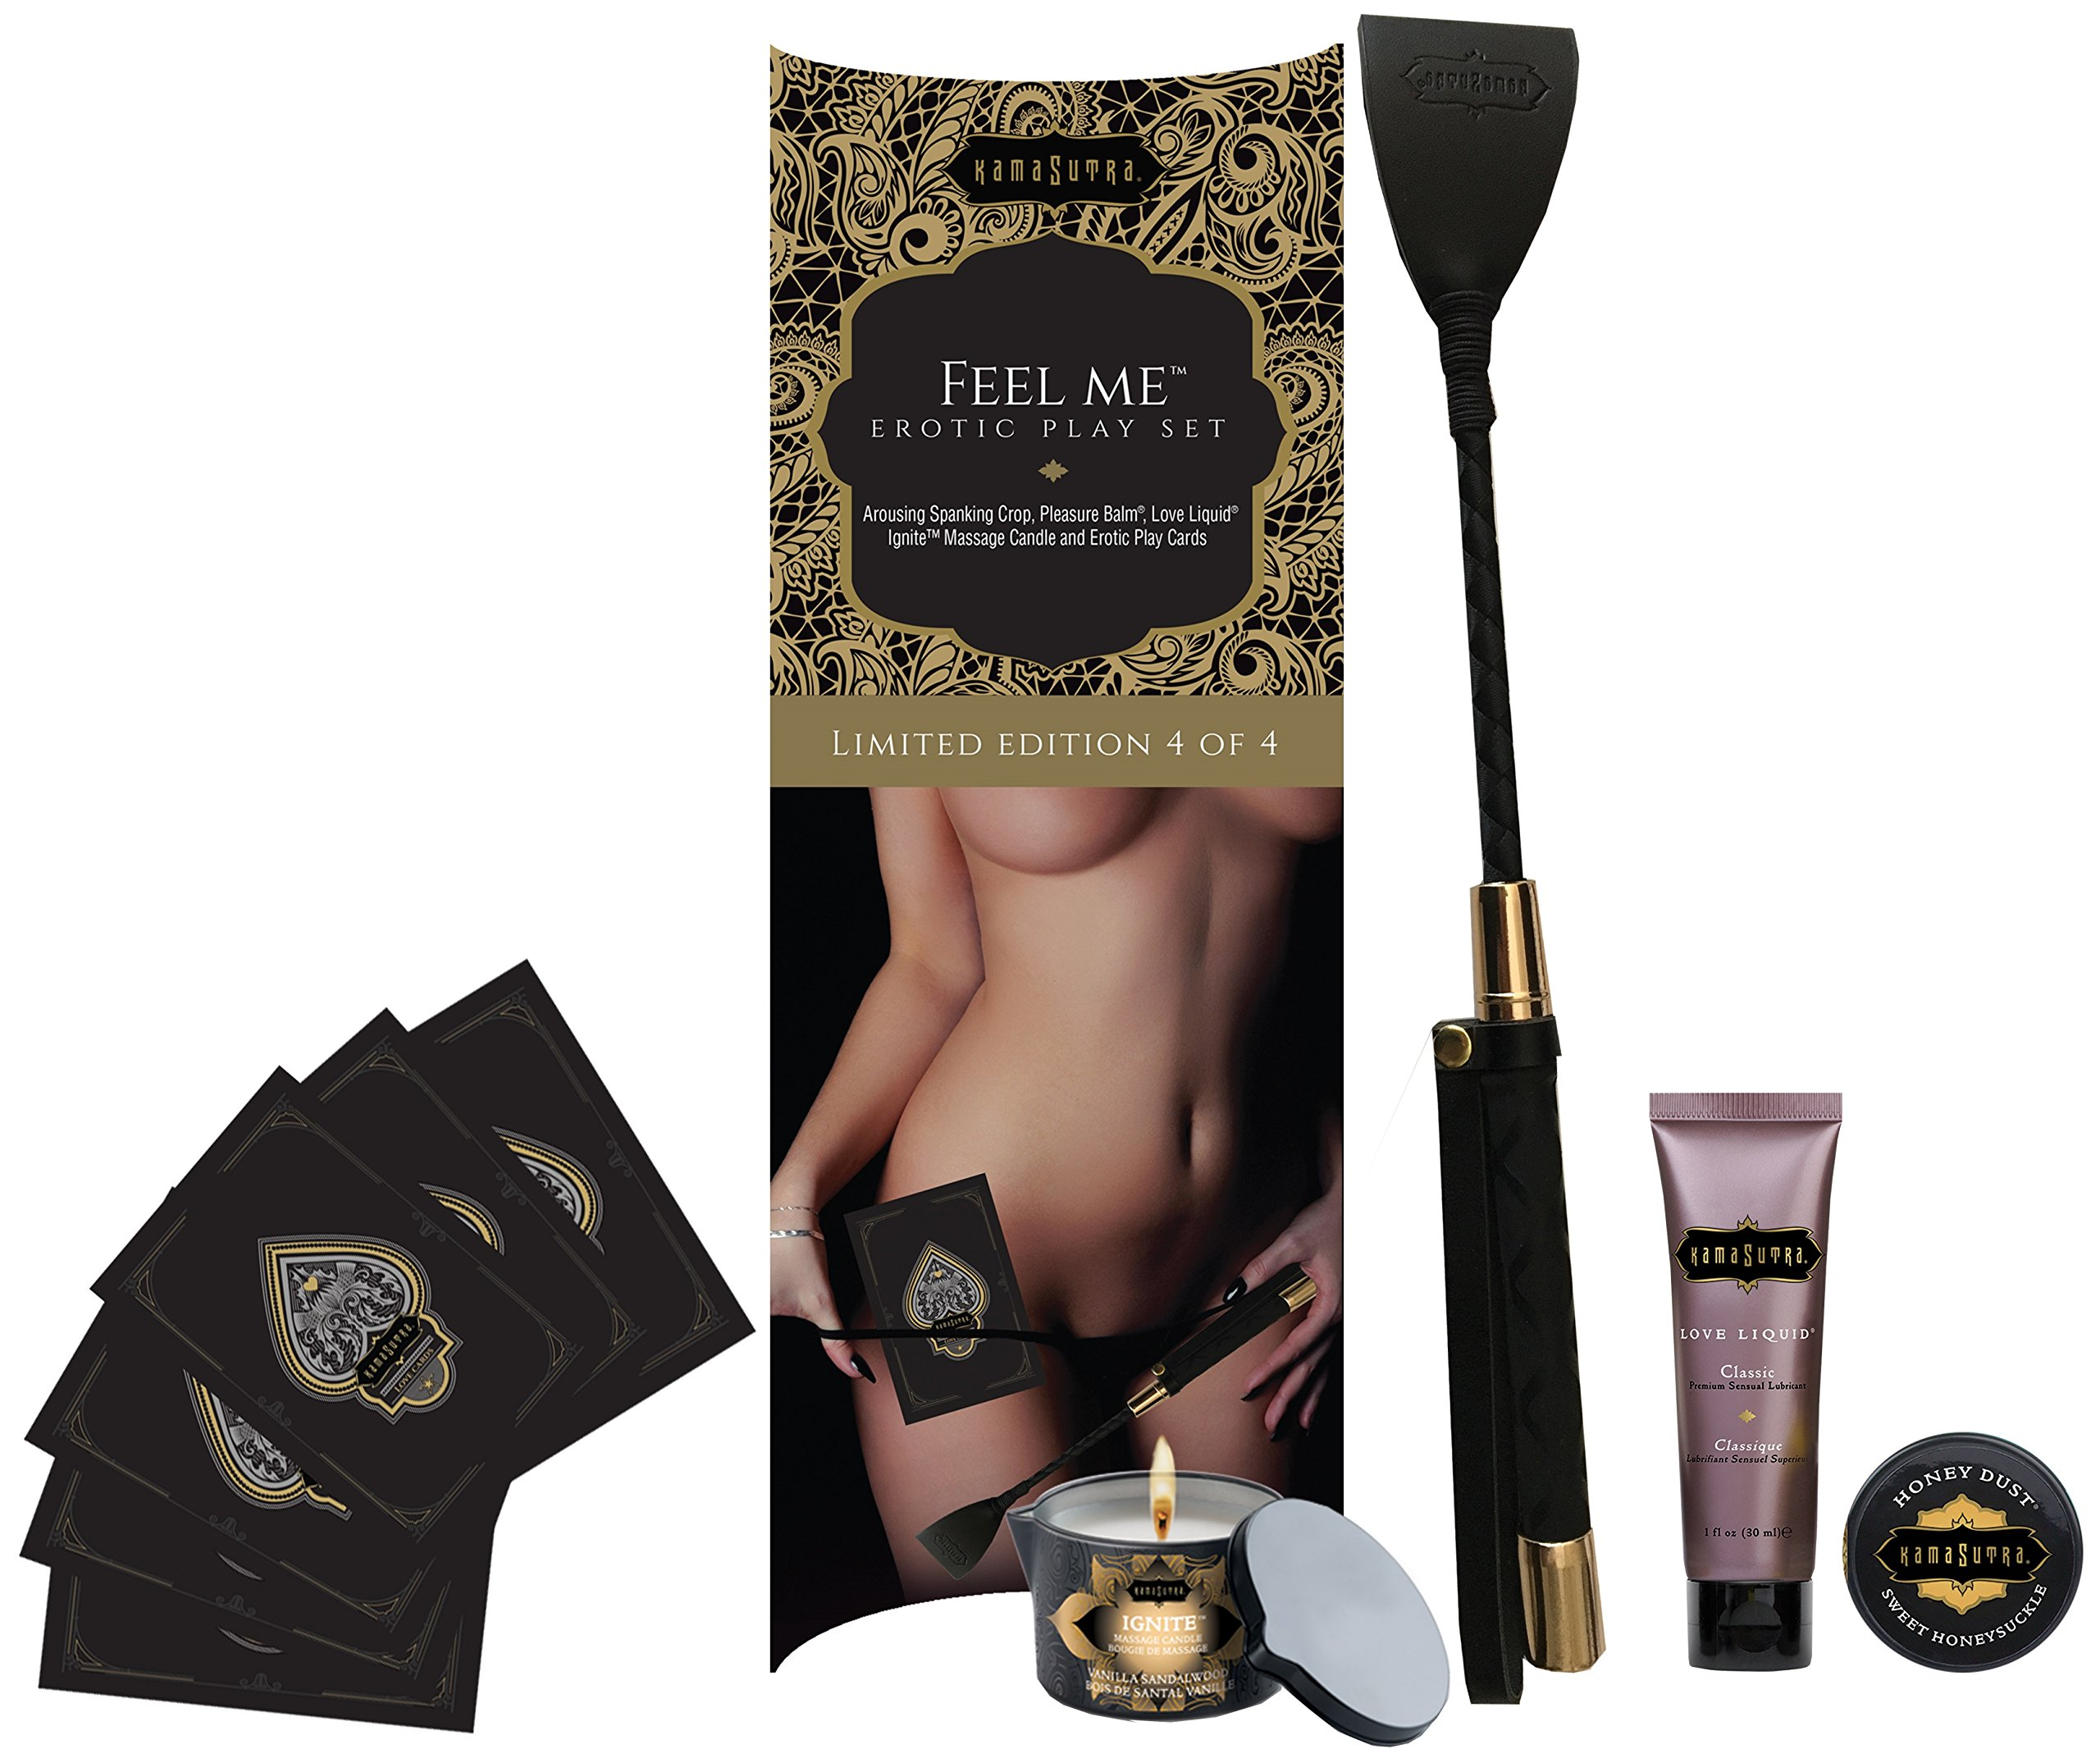 """5 Piece Erotic Playset - """"Feel Me"""" Set - Naughty Spanking Crop, Massage Candle, Pleasure Balm, Love Liquid, 12 Play Cards - Limited Edition Kit by Kama Sutra"""